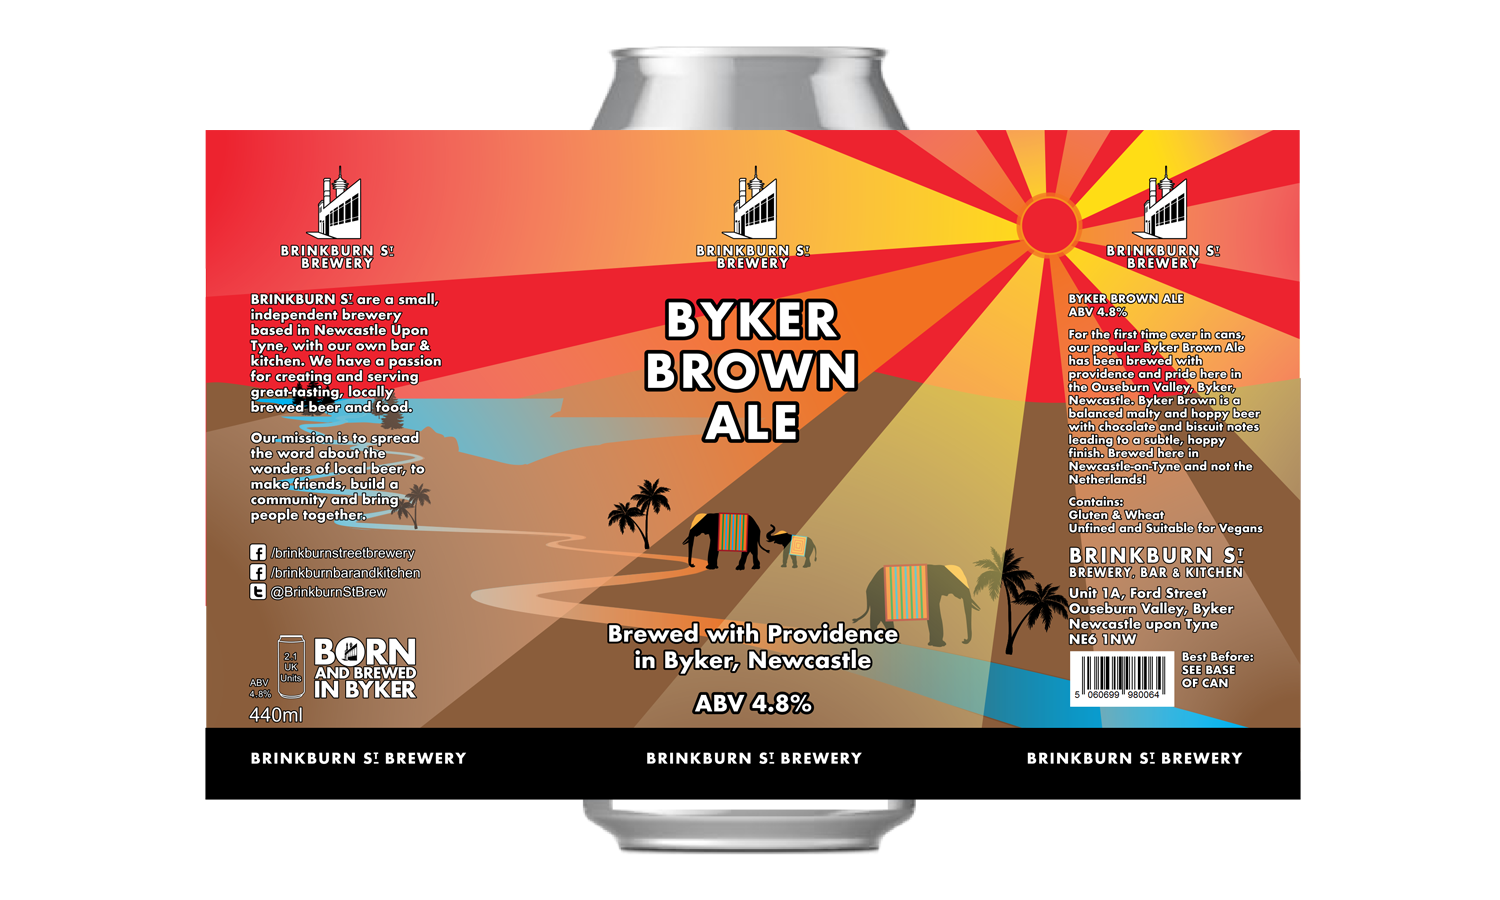 BykerBrown_oncan_050719s.png